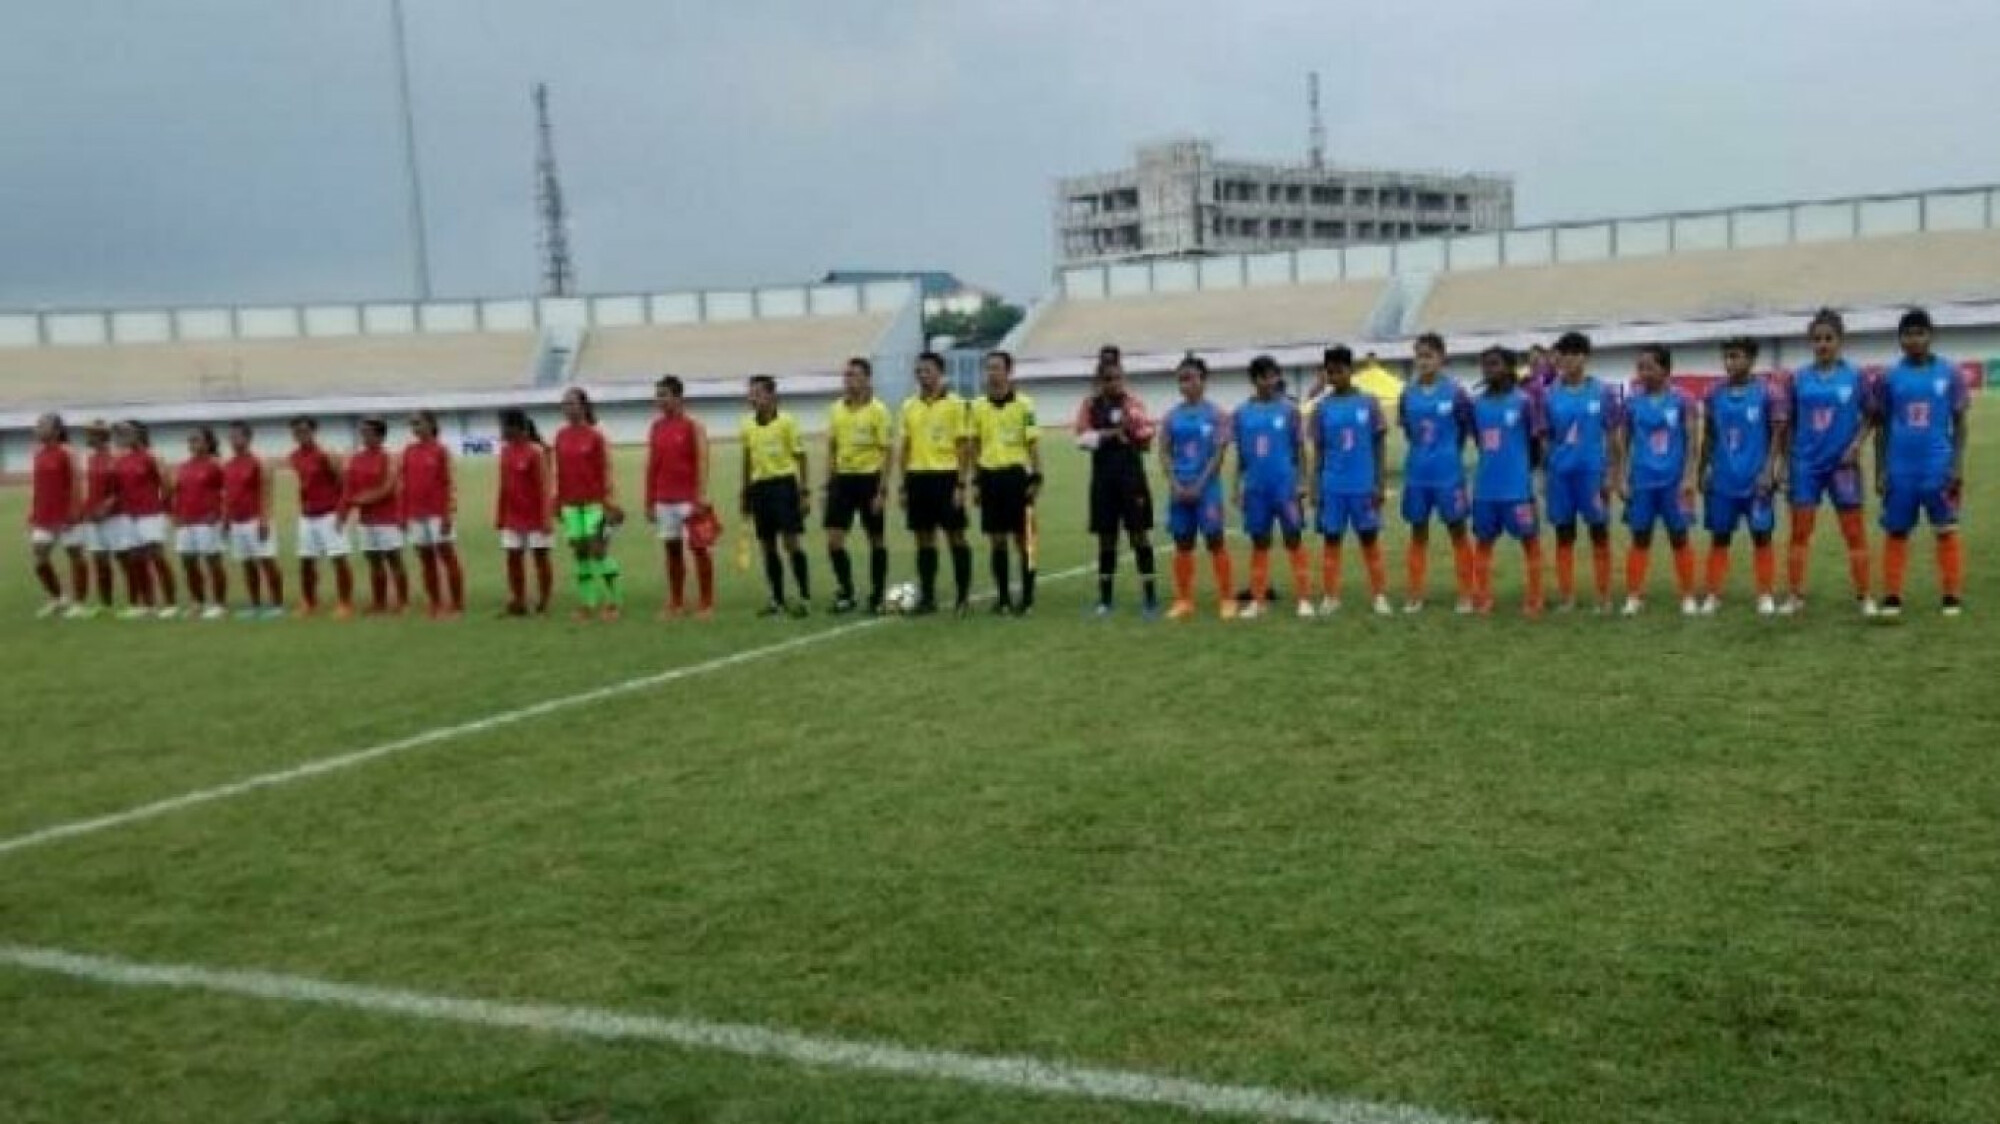 Indian women's team end East Asia tour winning all games.